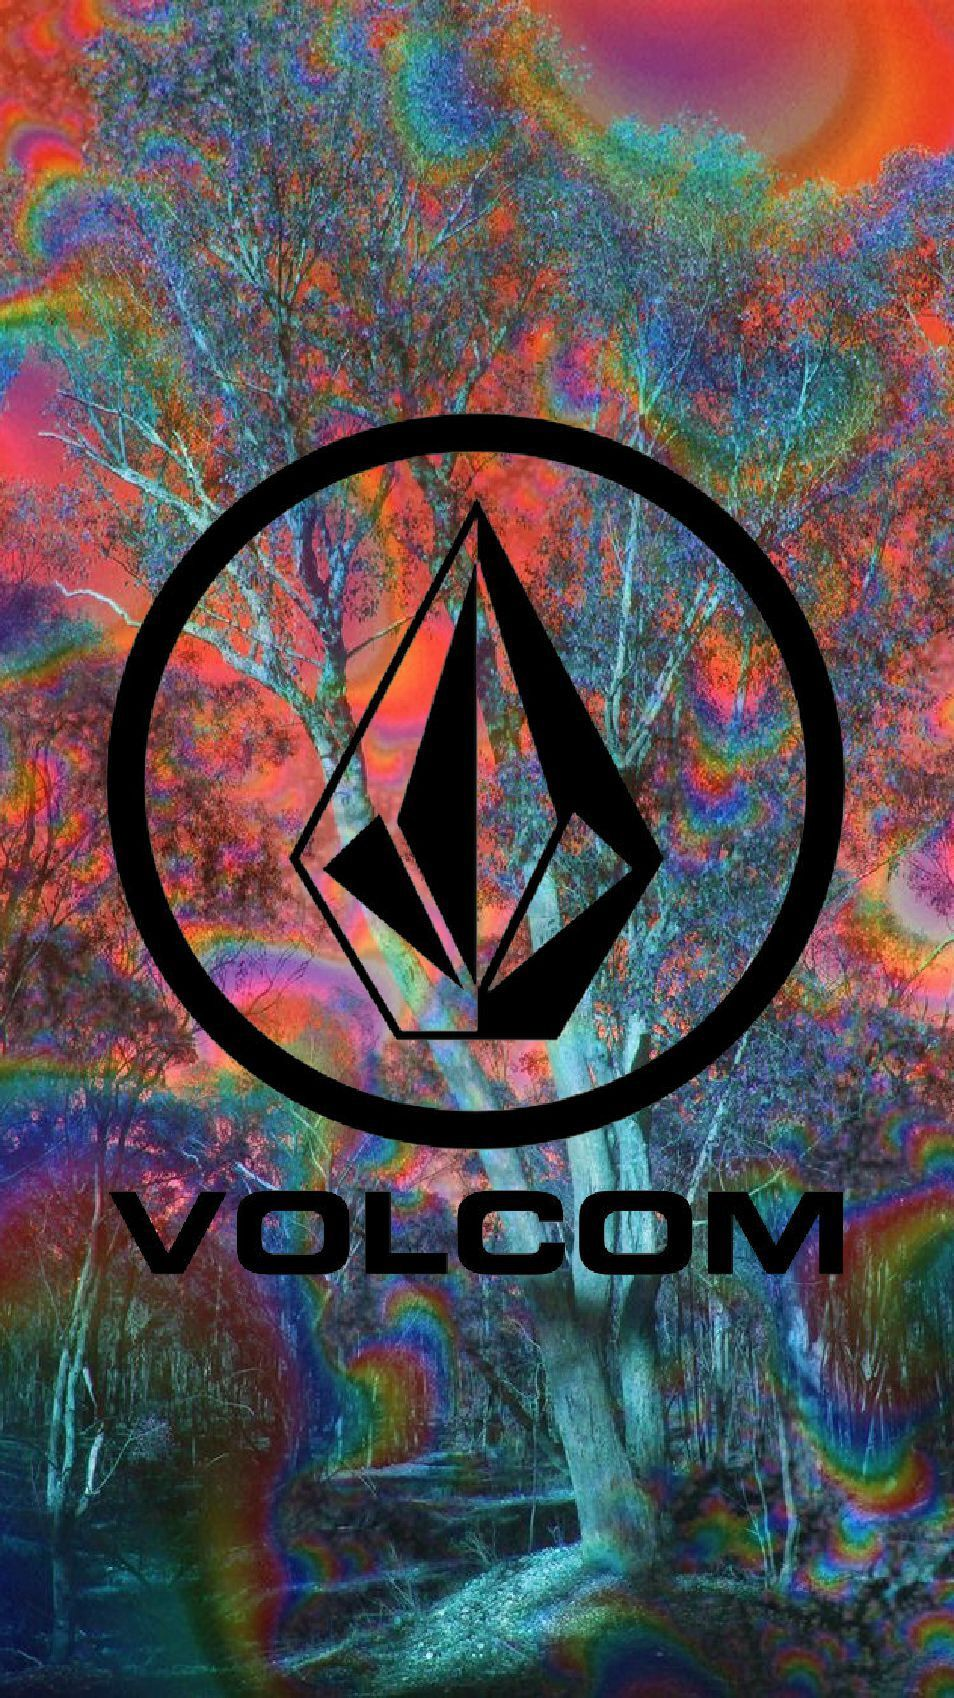 LiftedMiles Creation  #VolcomStone #iphonewallpaper  XIST - 1st Original Print from Uploaded by user